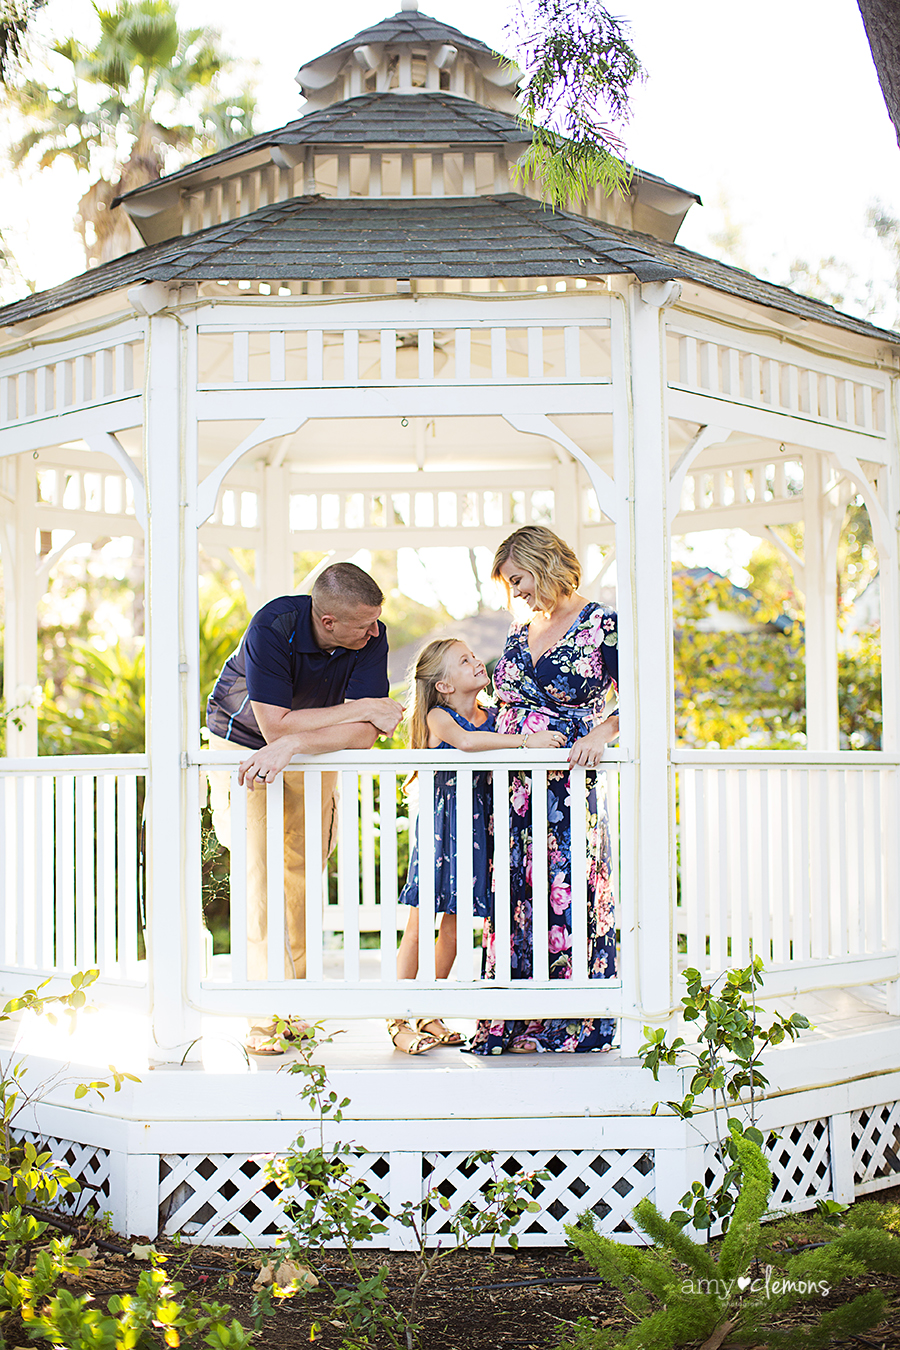 Corona Heritage Park & Museum Session Amy Clemons Photography (12)